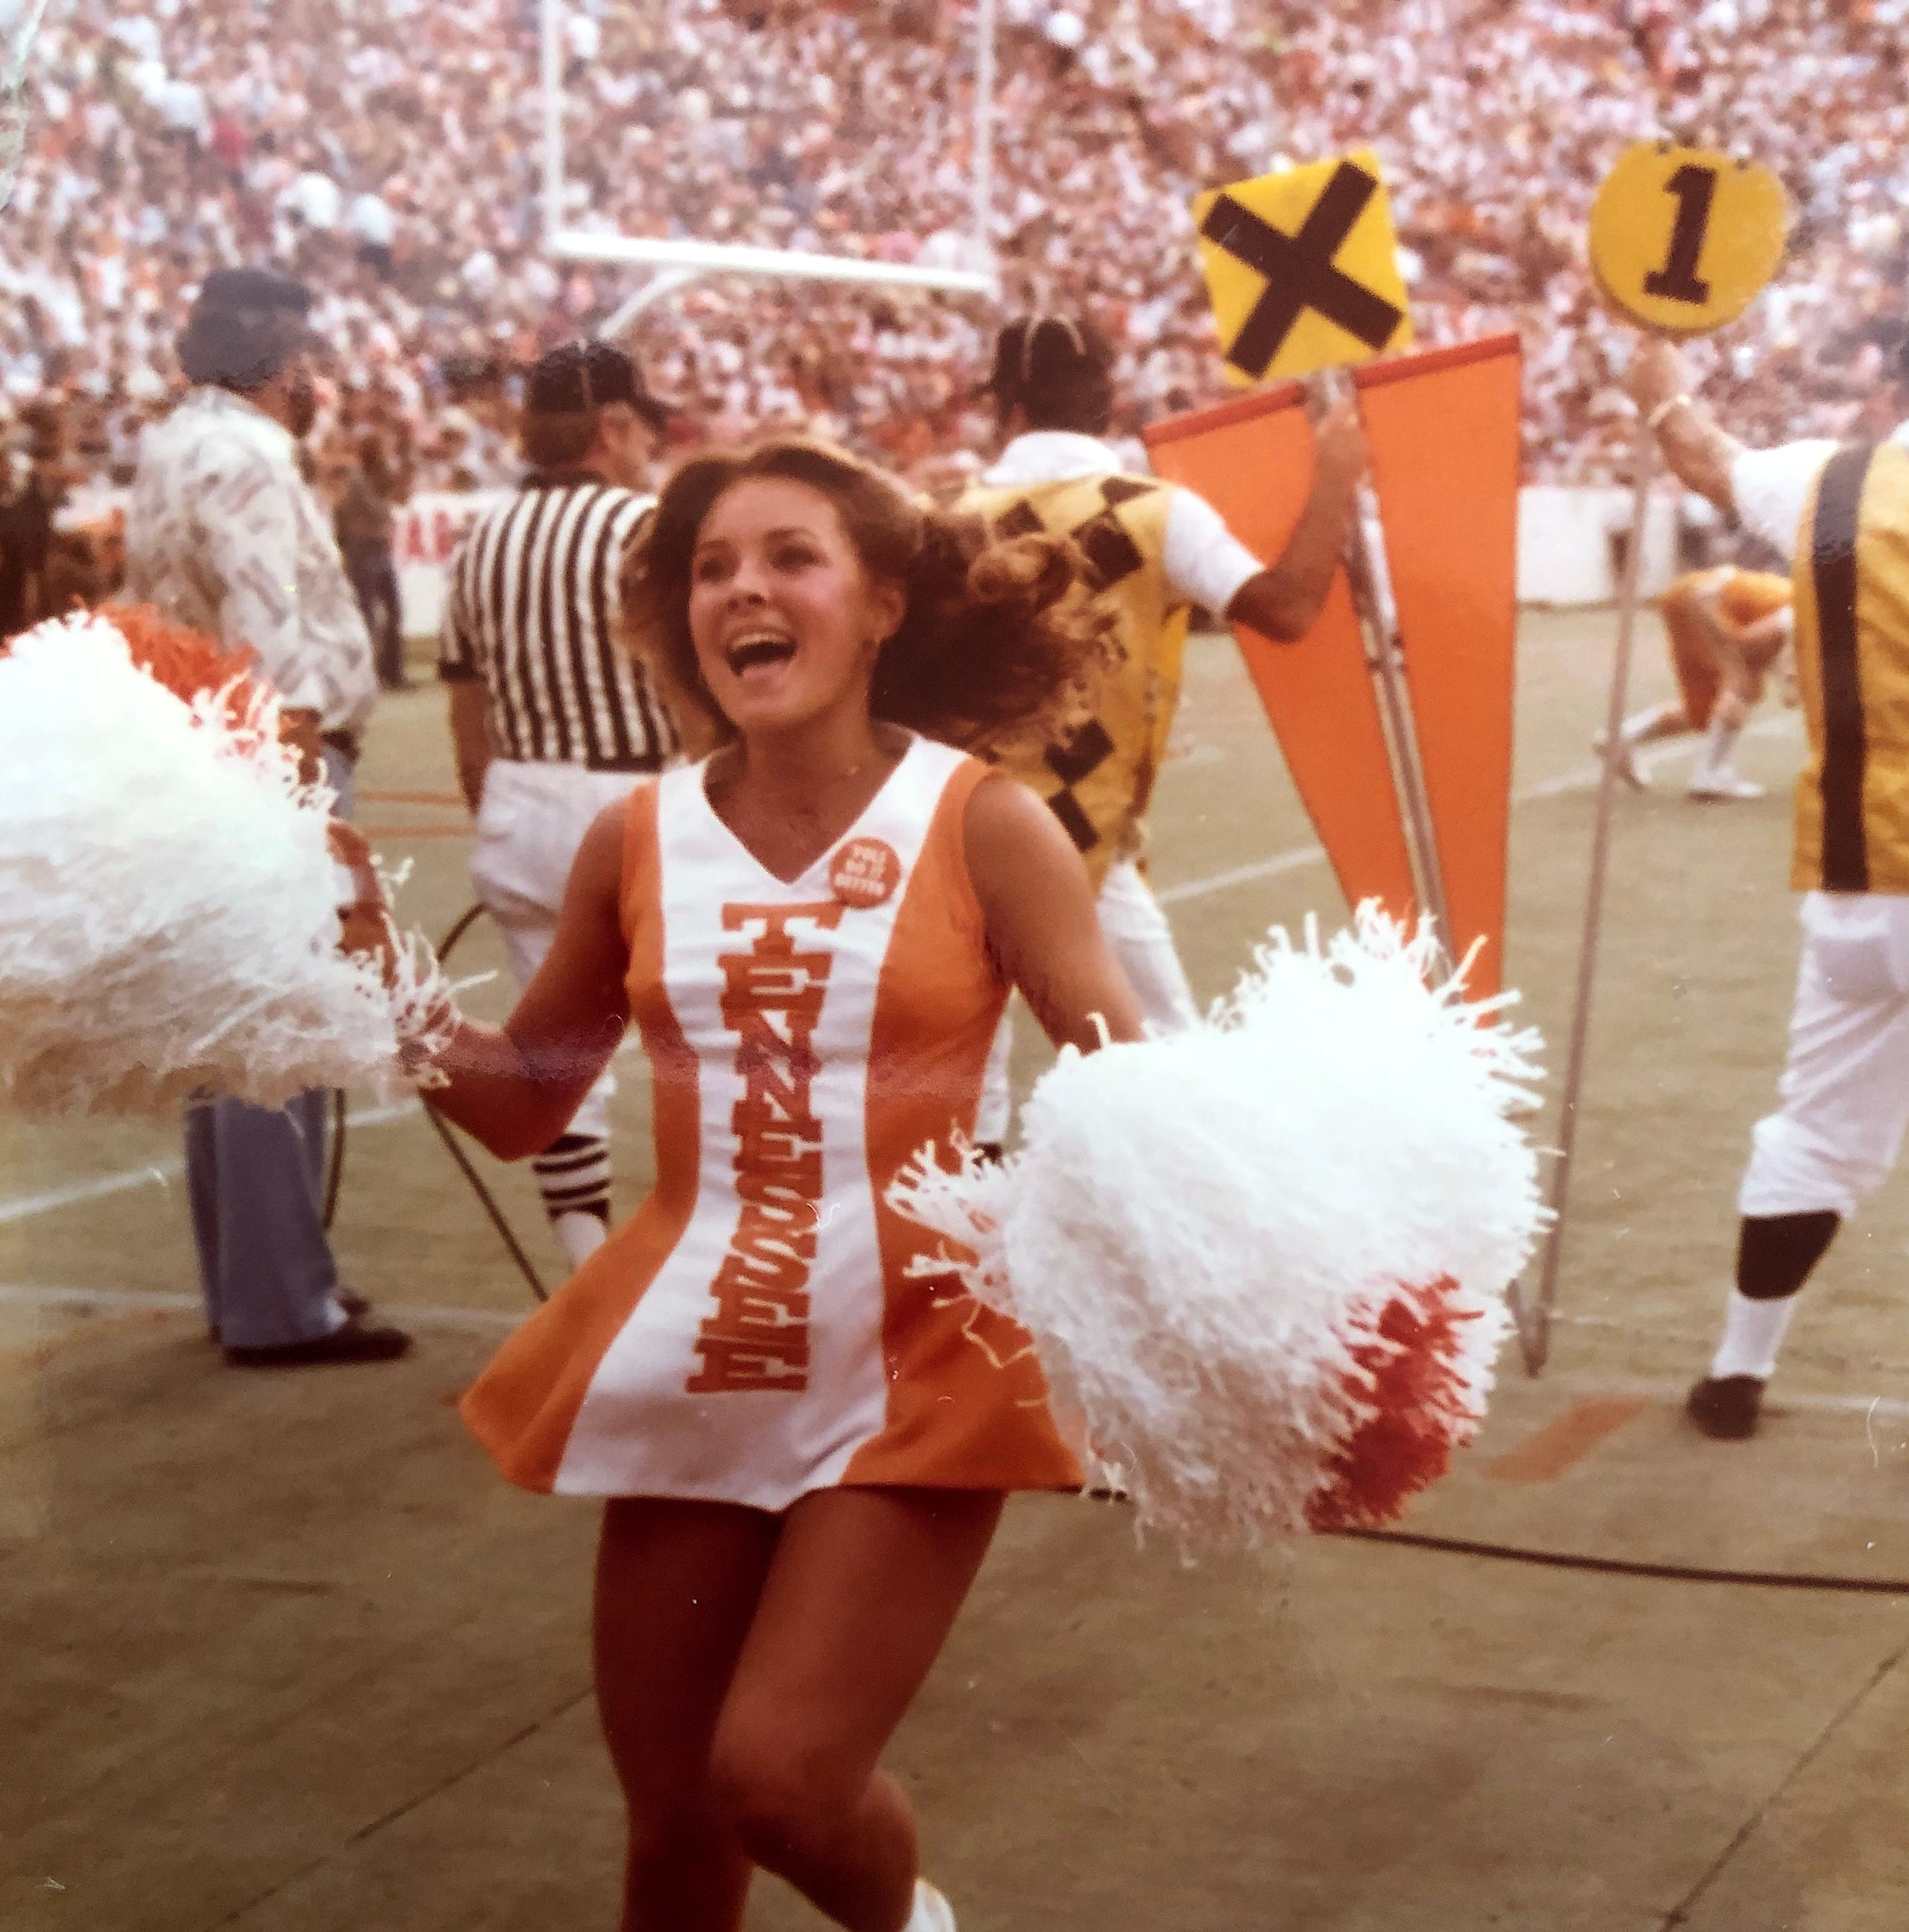 40 years after Tennessee basketball won SEC, former cheerleader has faith Vols will 'Gumba'